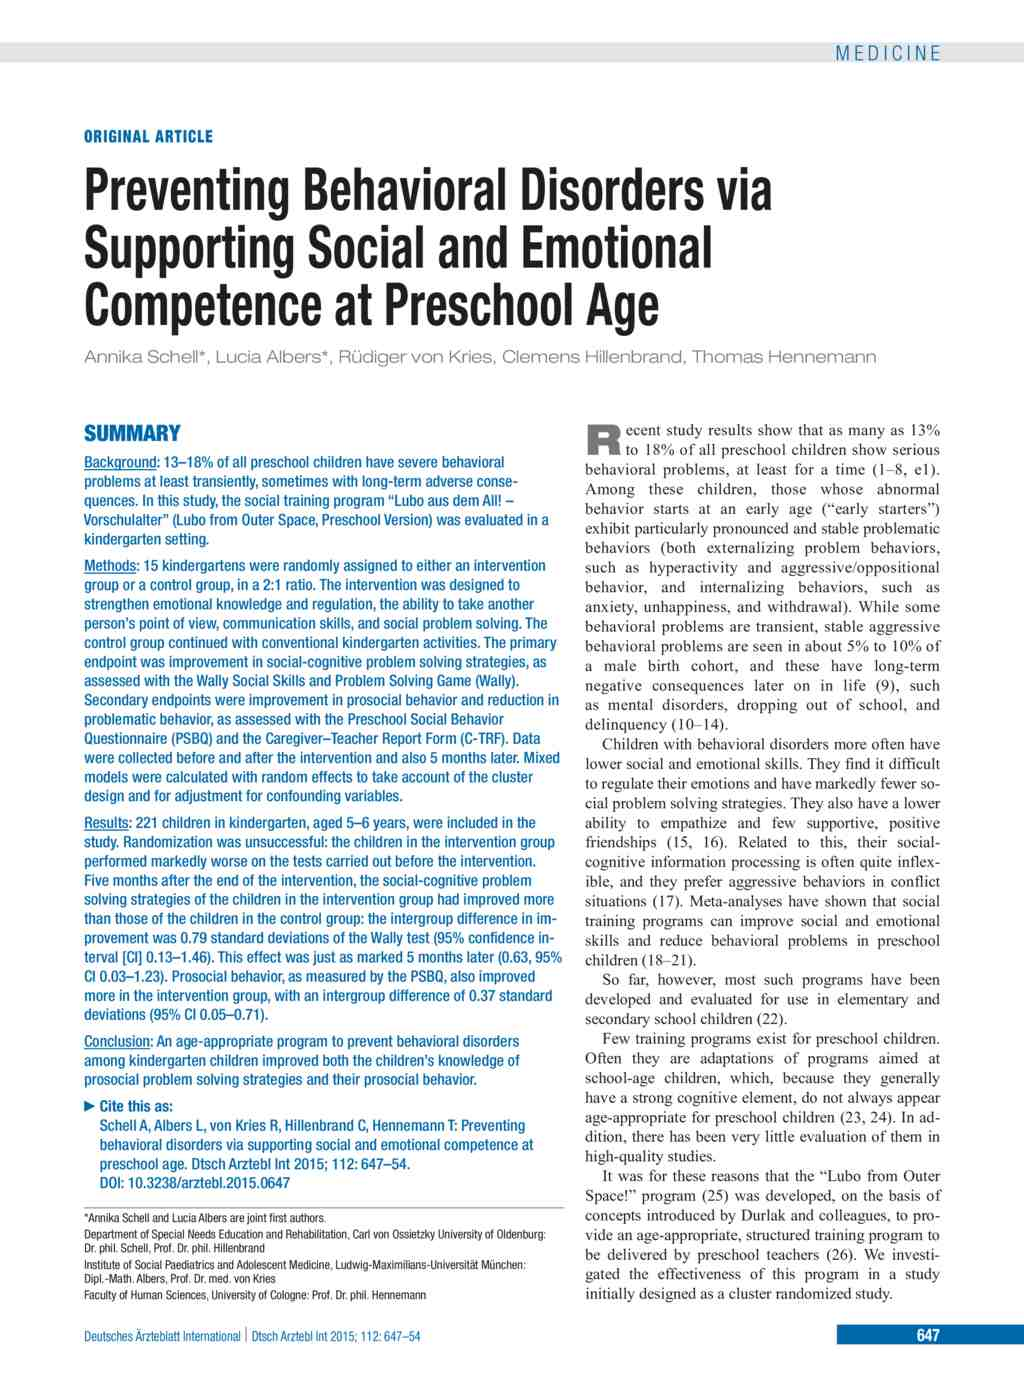 an introduction to the issue of emotional burdens Curr pediatr res 2017 volume 21 issue 2 272  children, especially a  psychological one, and educational about clinical  introduction  keywords:  psychosocial burden, caregivers of children, autism spectrum disorder.